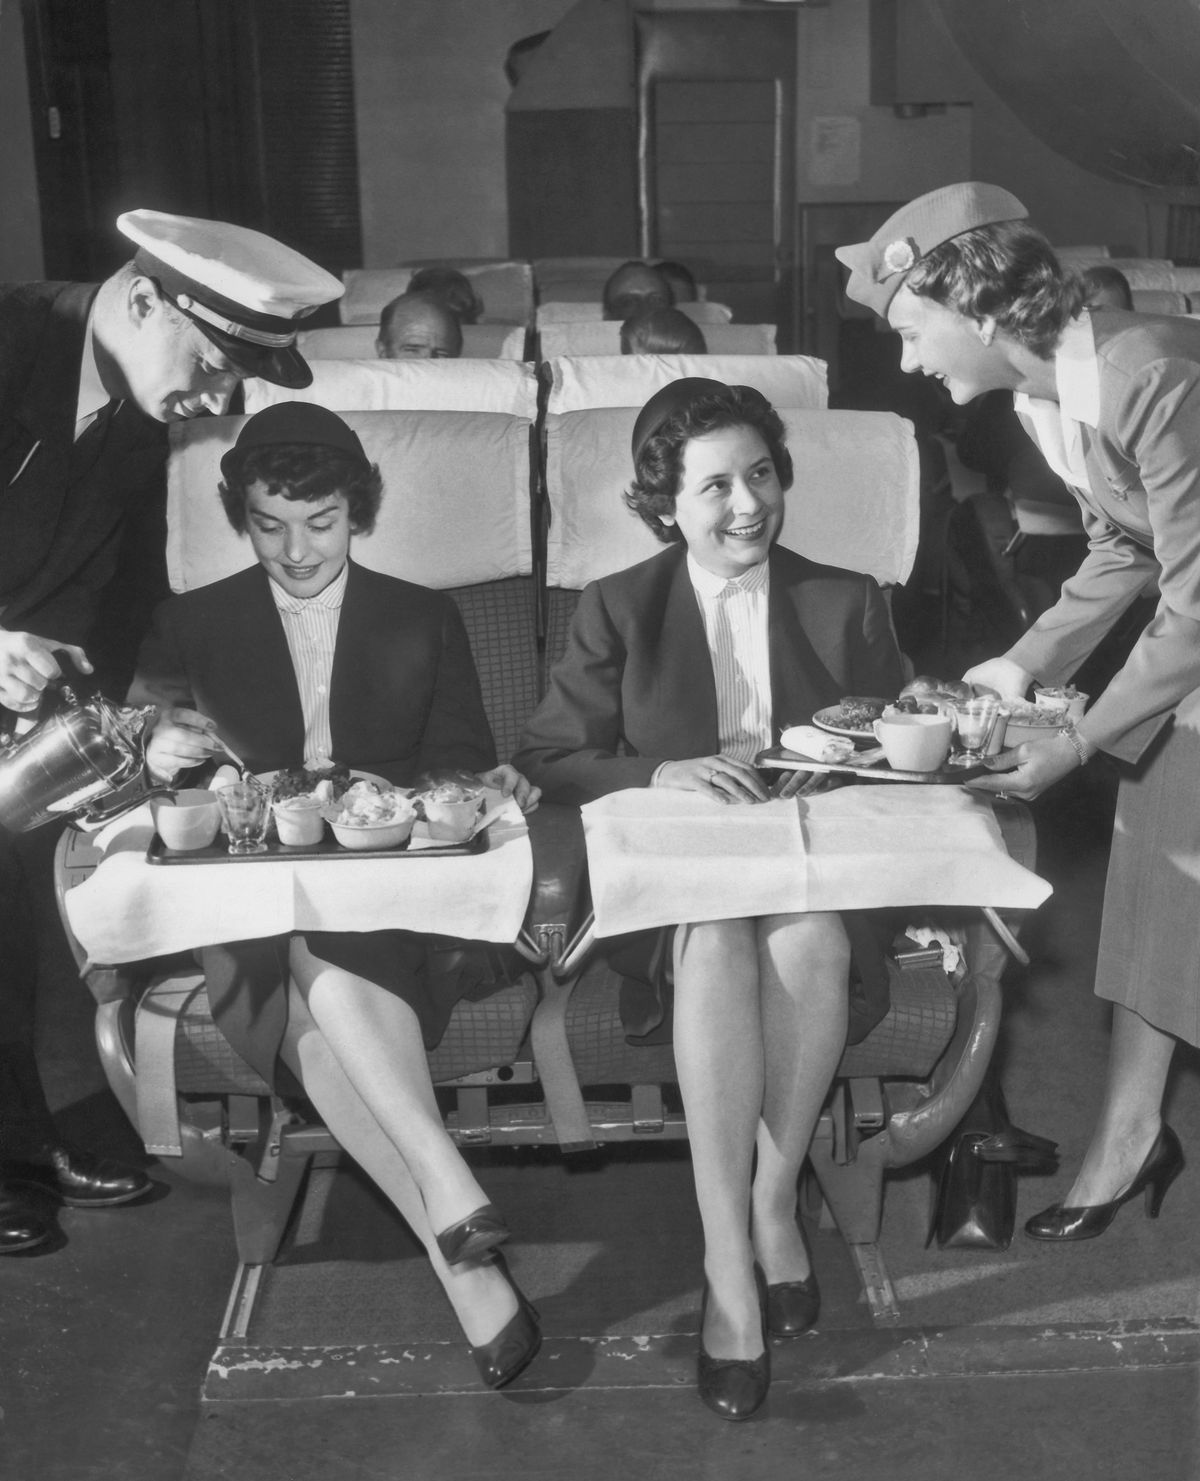 In our casual society, dressing up for flights is no longer standard practice.